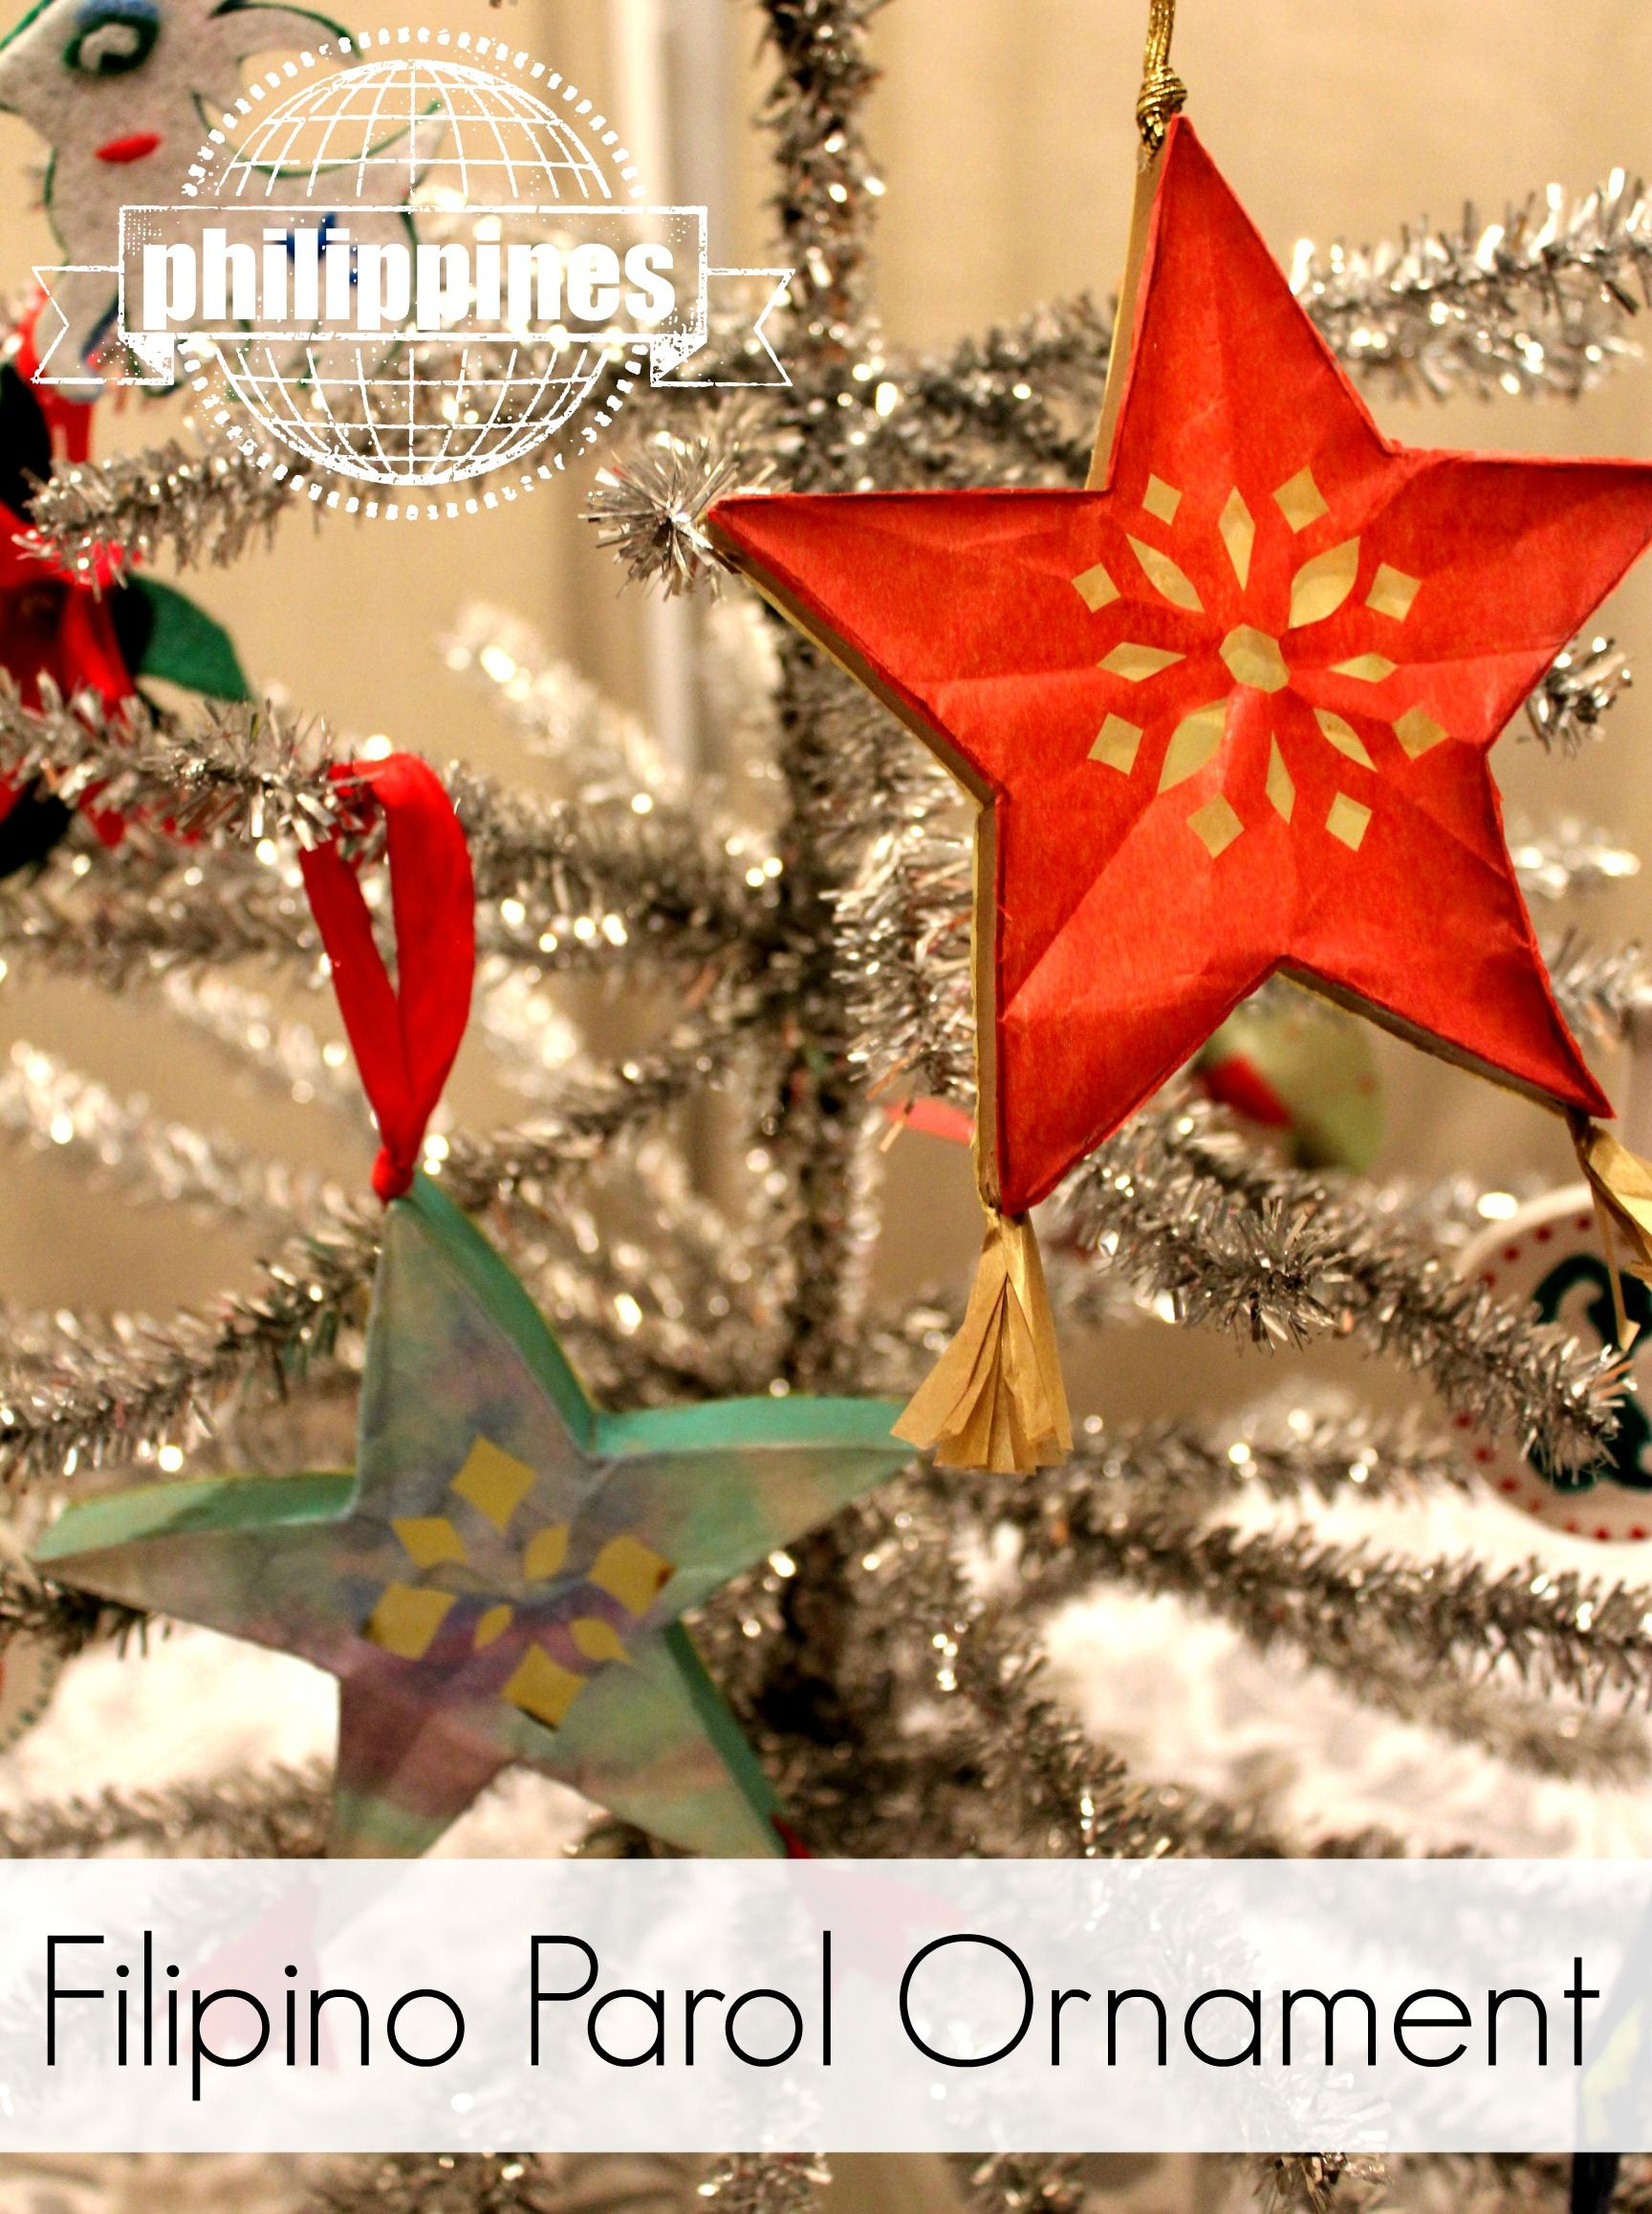 Diy Christmas Ornaments Inspired By World Cultures Multicultural Kid Blogs Diy Christmas Wall Diy Christmas Ornaments Christmas Wall Decor Diy